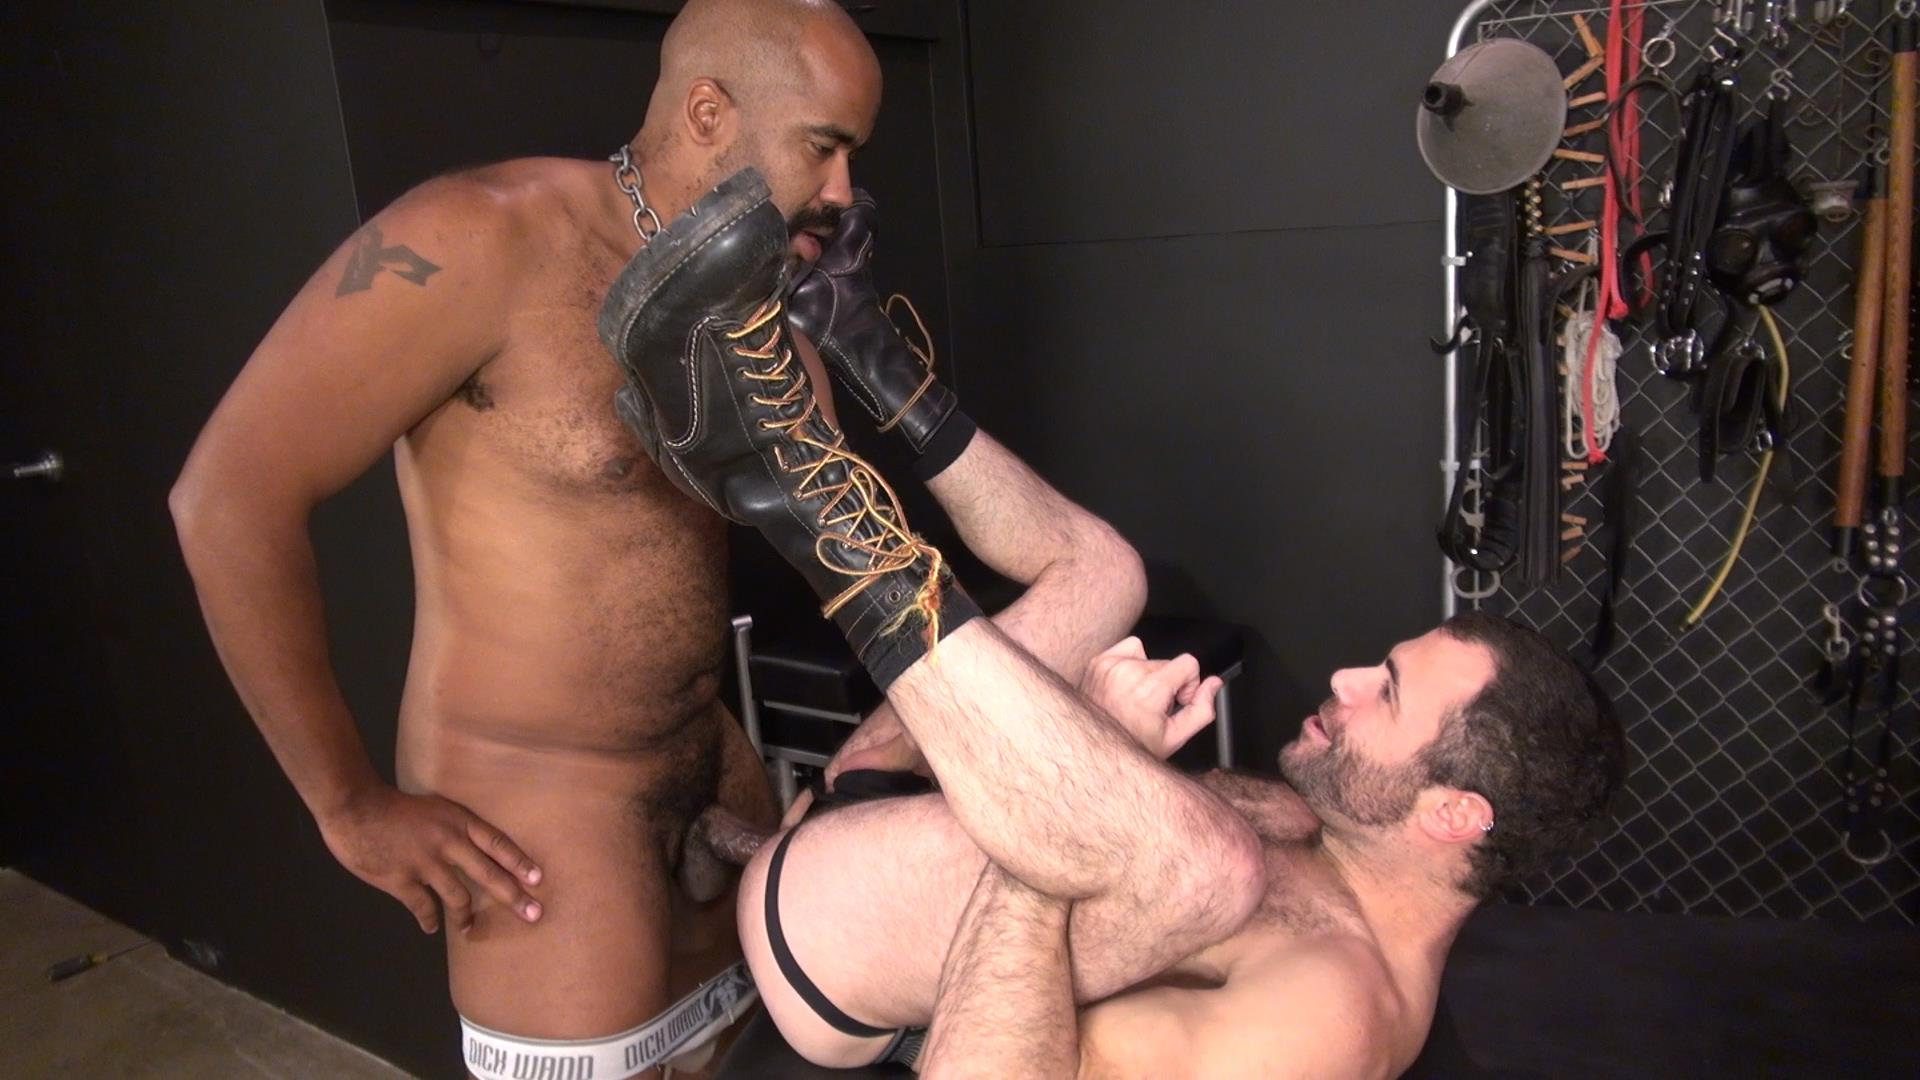 Raw-and-Rough-Jake-Wetmore-and-Dusty-Williams-and-Kid-Satyr-Bareback-Taking-Raw-Daddy-Loads-Cum-Amateur-Gay-Porn-18 Hairy Pup Taking Raw Interracial Daddy Loads Bareback